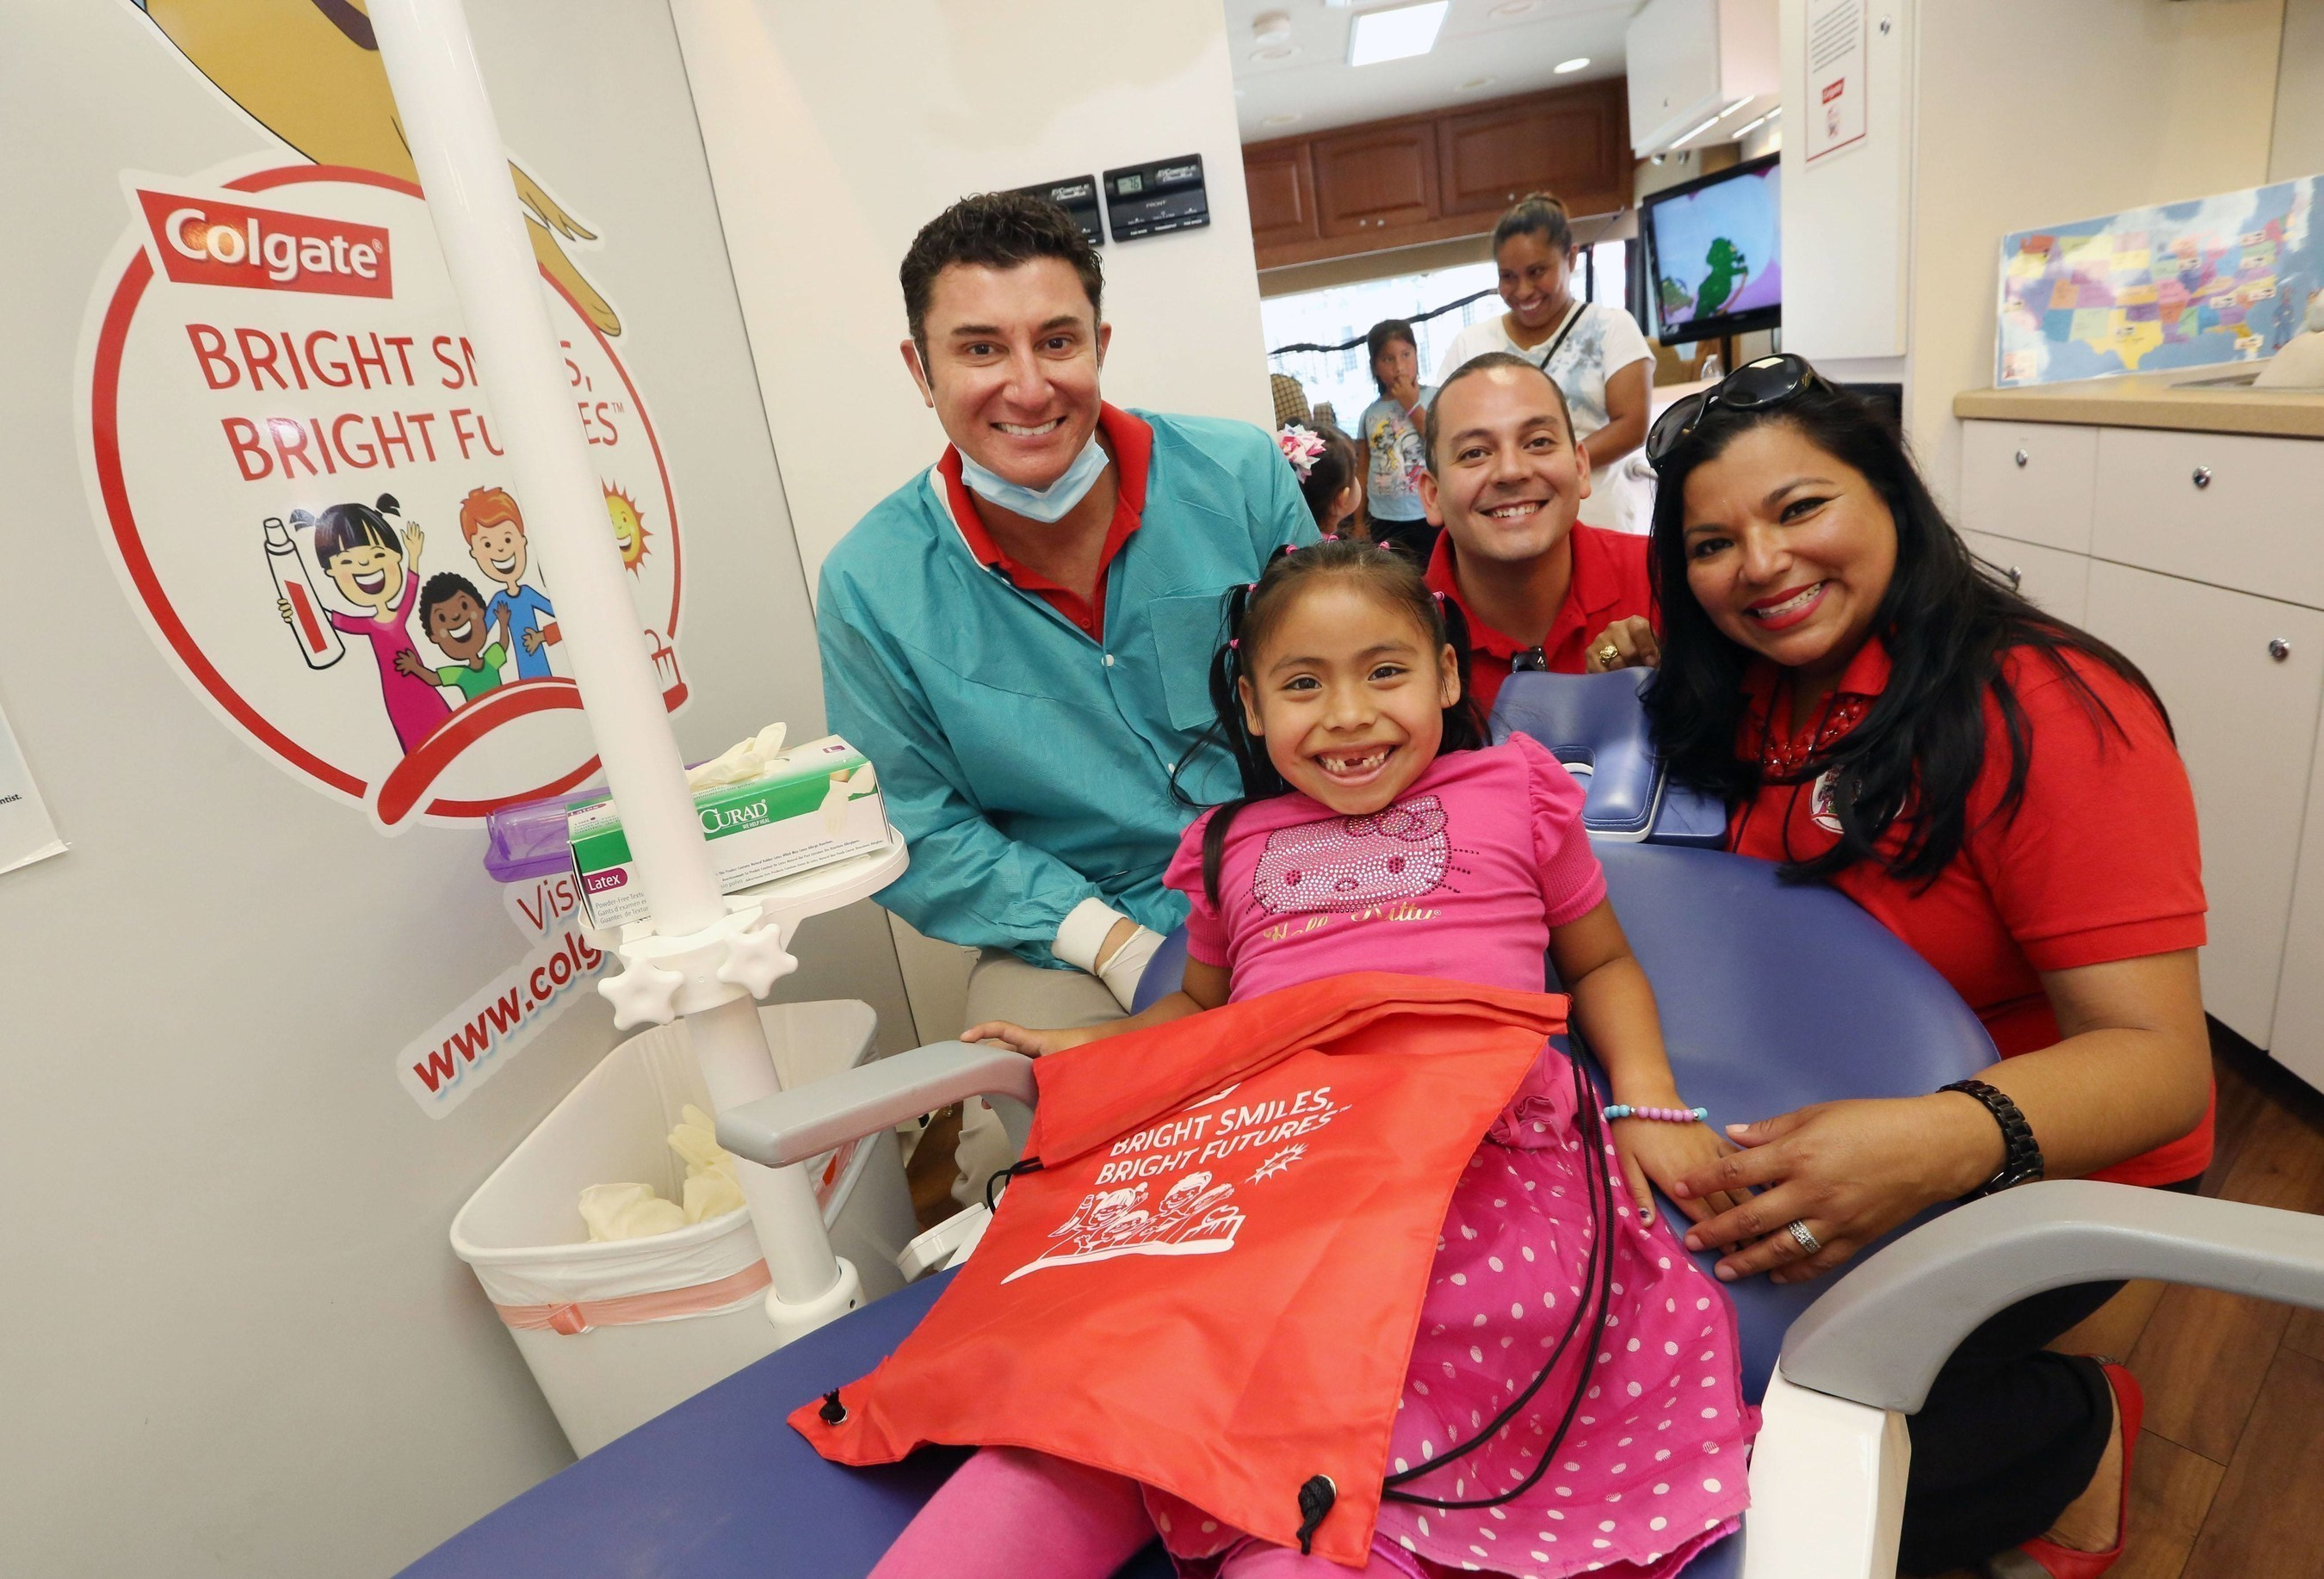 Colgate Bright Smiles, Bright Futures(TM) mobile dental van that provides children ages 3-12 with free dental screenings and oral health education in various Hispanic communities in the U.S.